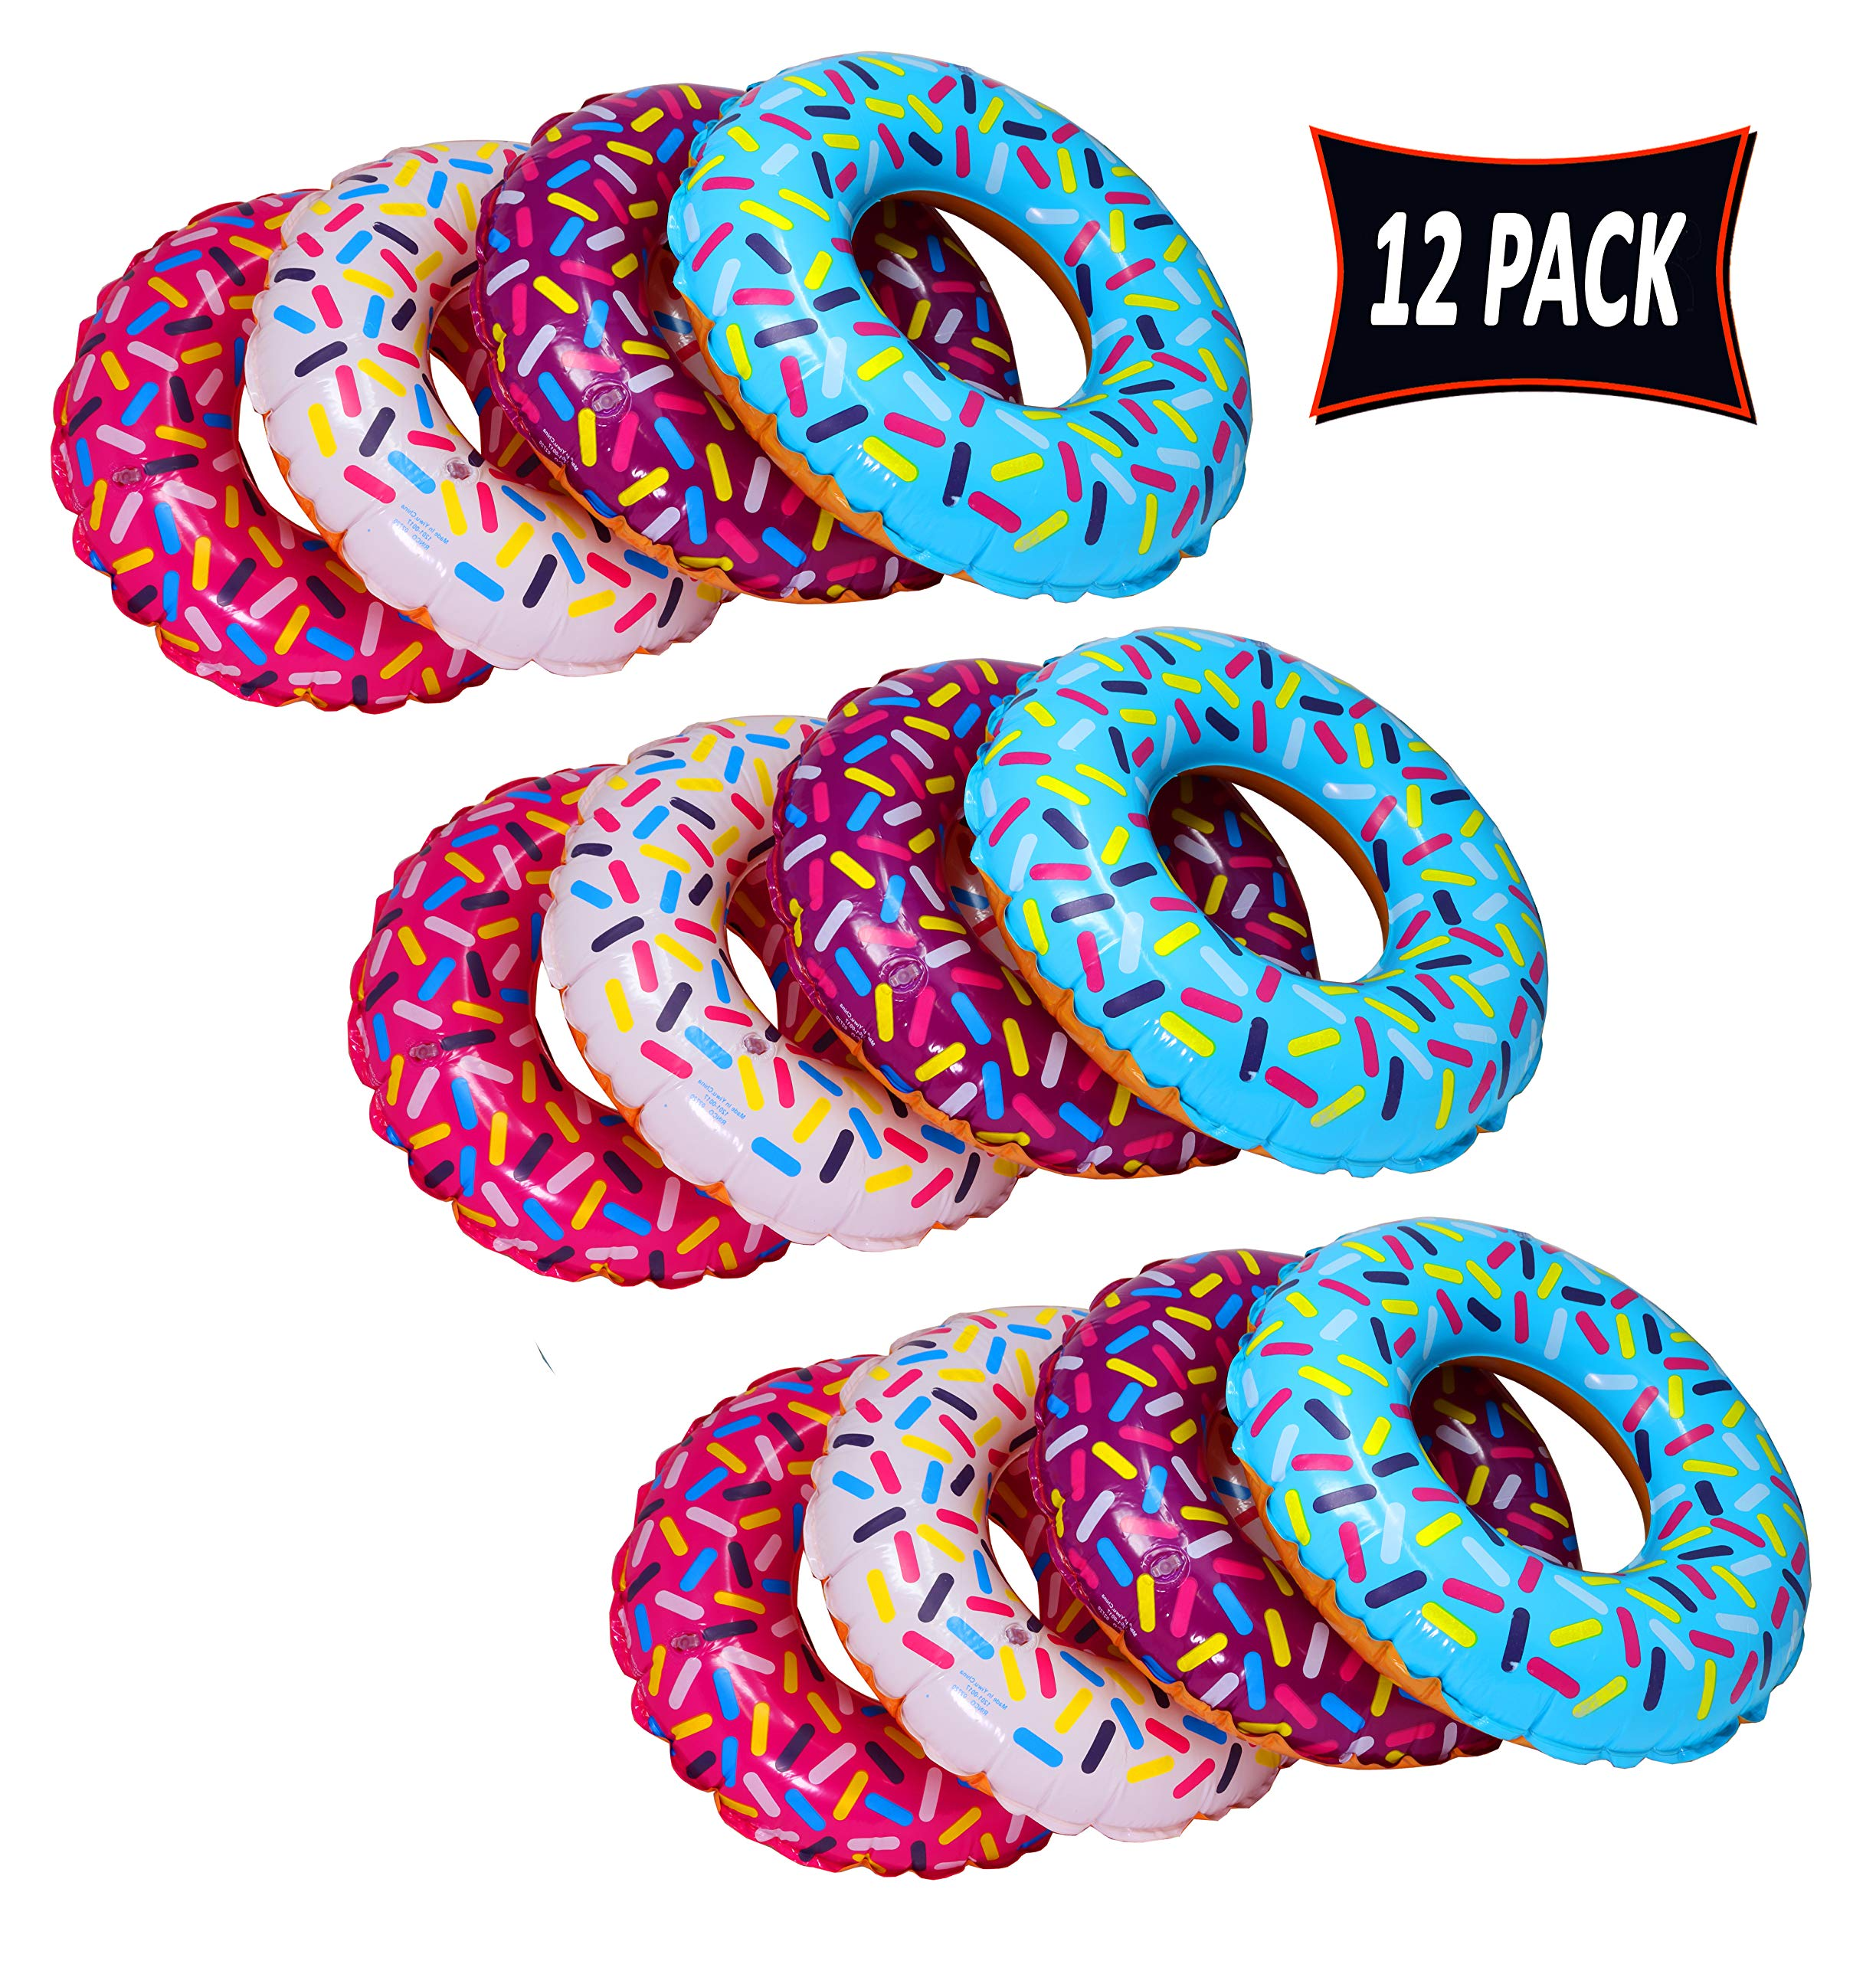 Inflatable Donut Party Decorations Pool and Beach Party Favor Pack of 12 Donut Shaped Inflatables 18 Inch by SN Incorp.